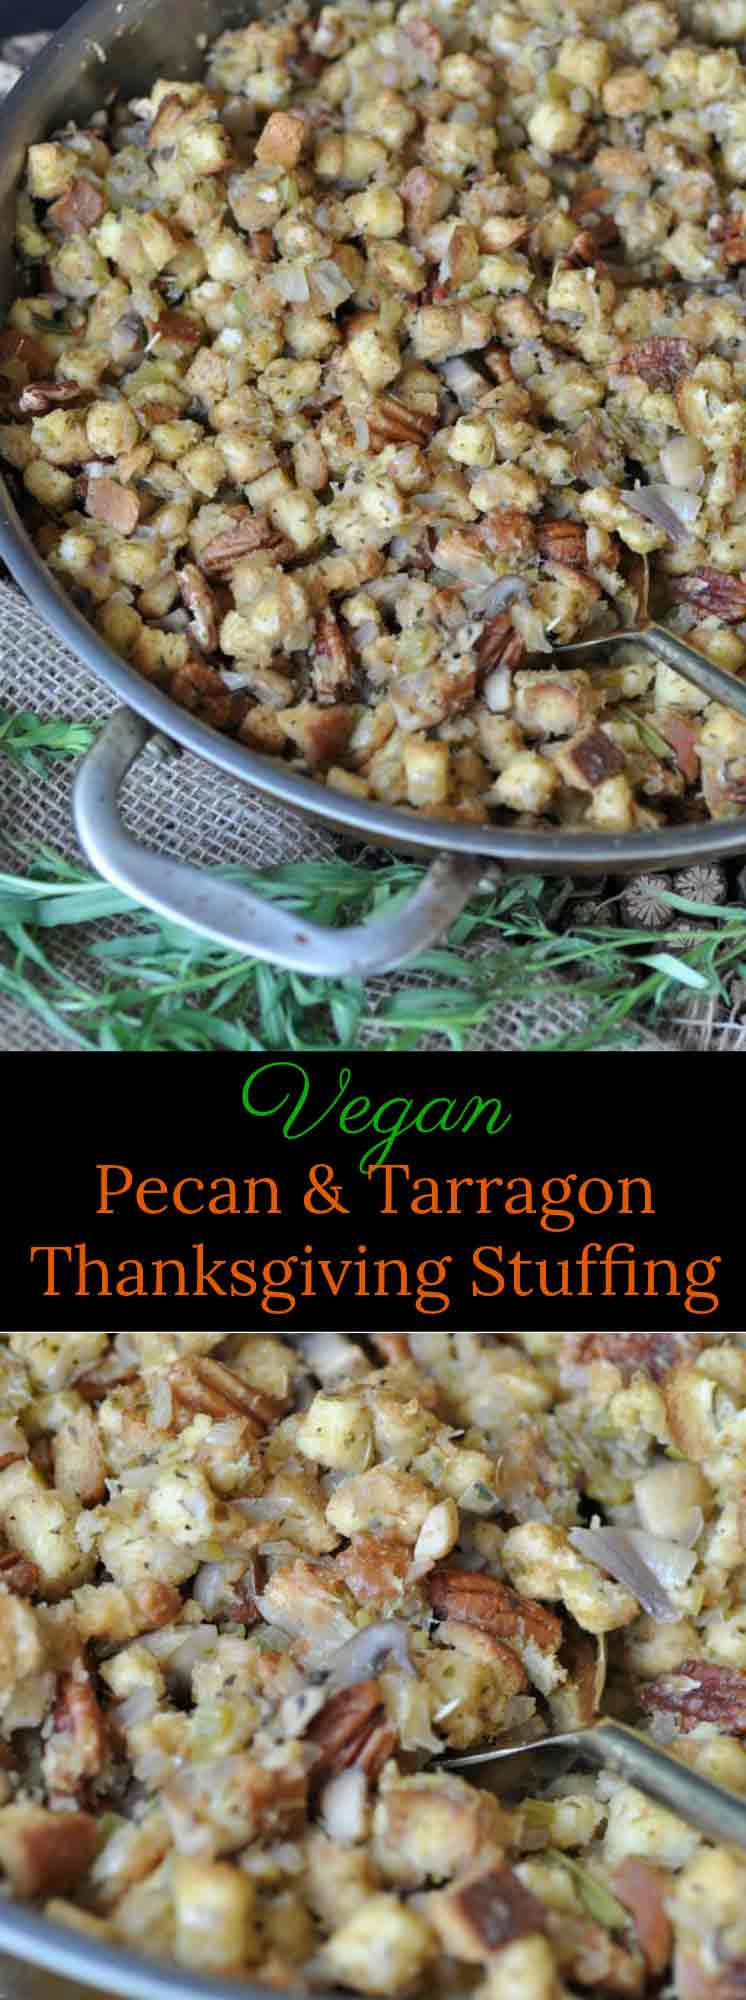 Vegan stuffing made with spiced pecans and fresh tarragon. Perfect for Thanksgiving!